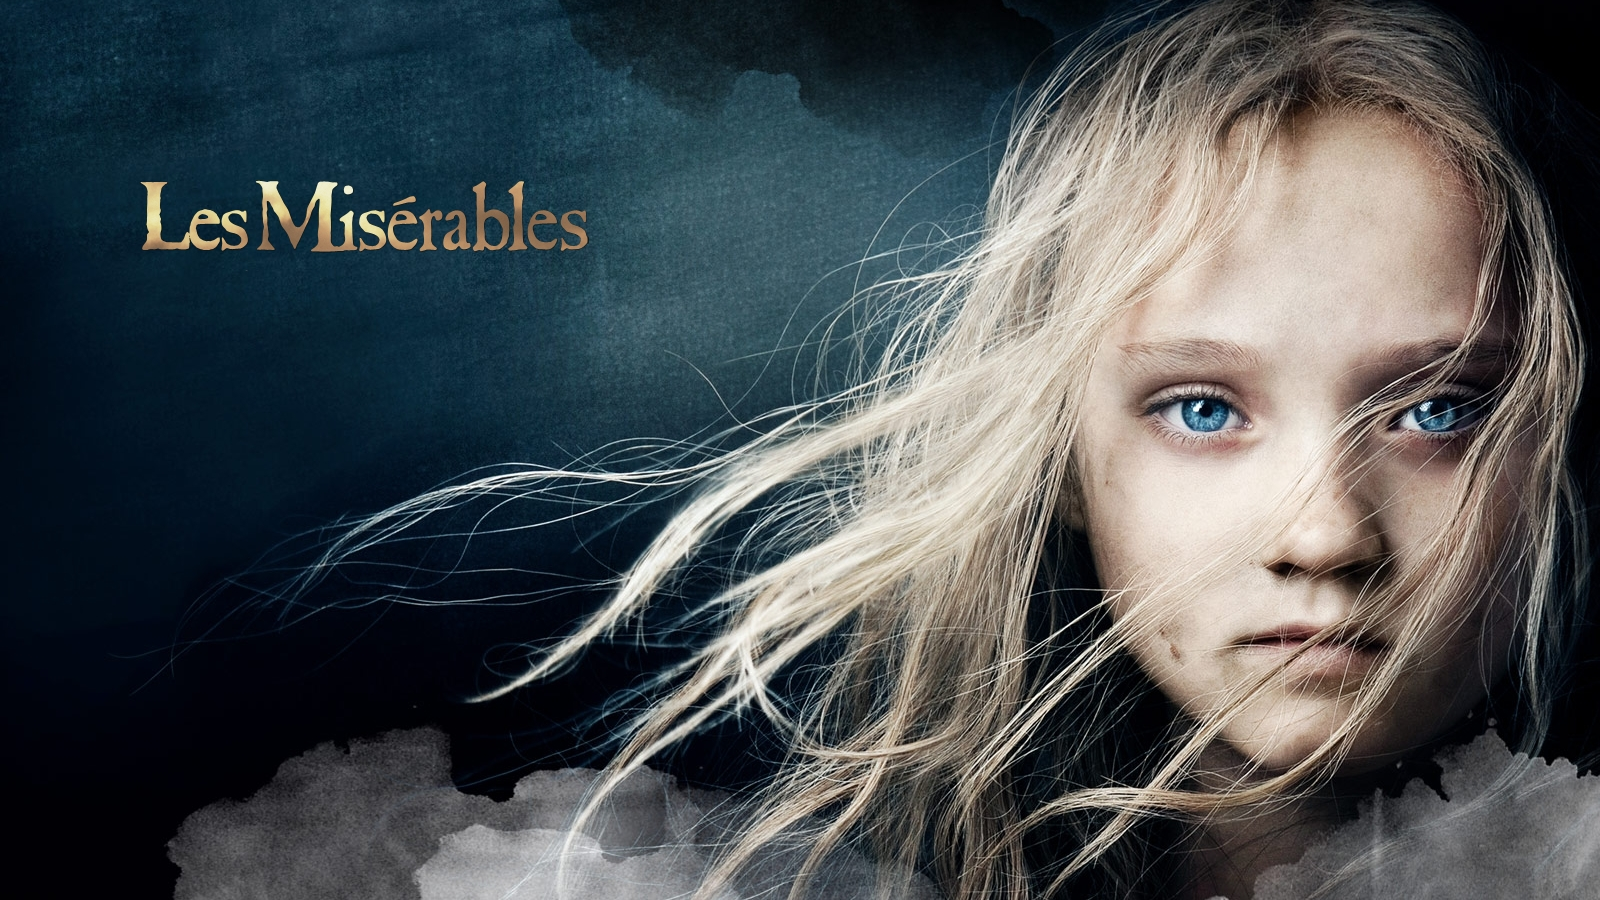 http://4.bp.blogspot.com/-cnOO6RjwEuY/UM96H1vaApI/AAAAAAAAT-w/xi97tX9hM7k/s1600/Les_Miserables_Movie_Wallpaper.jpg